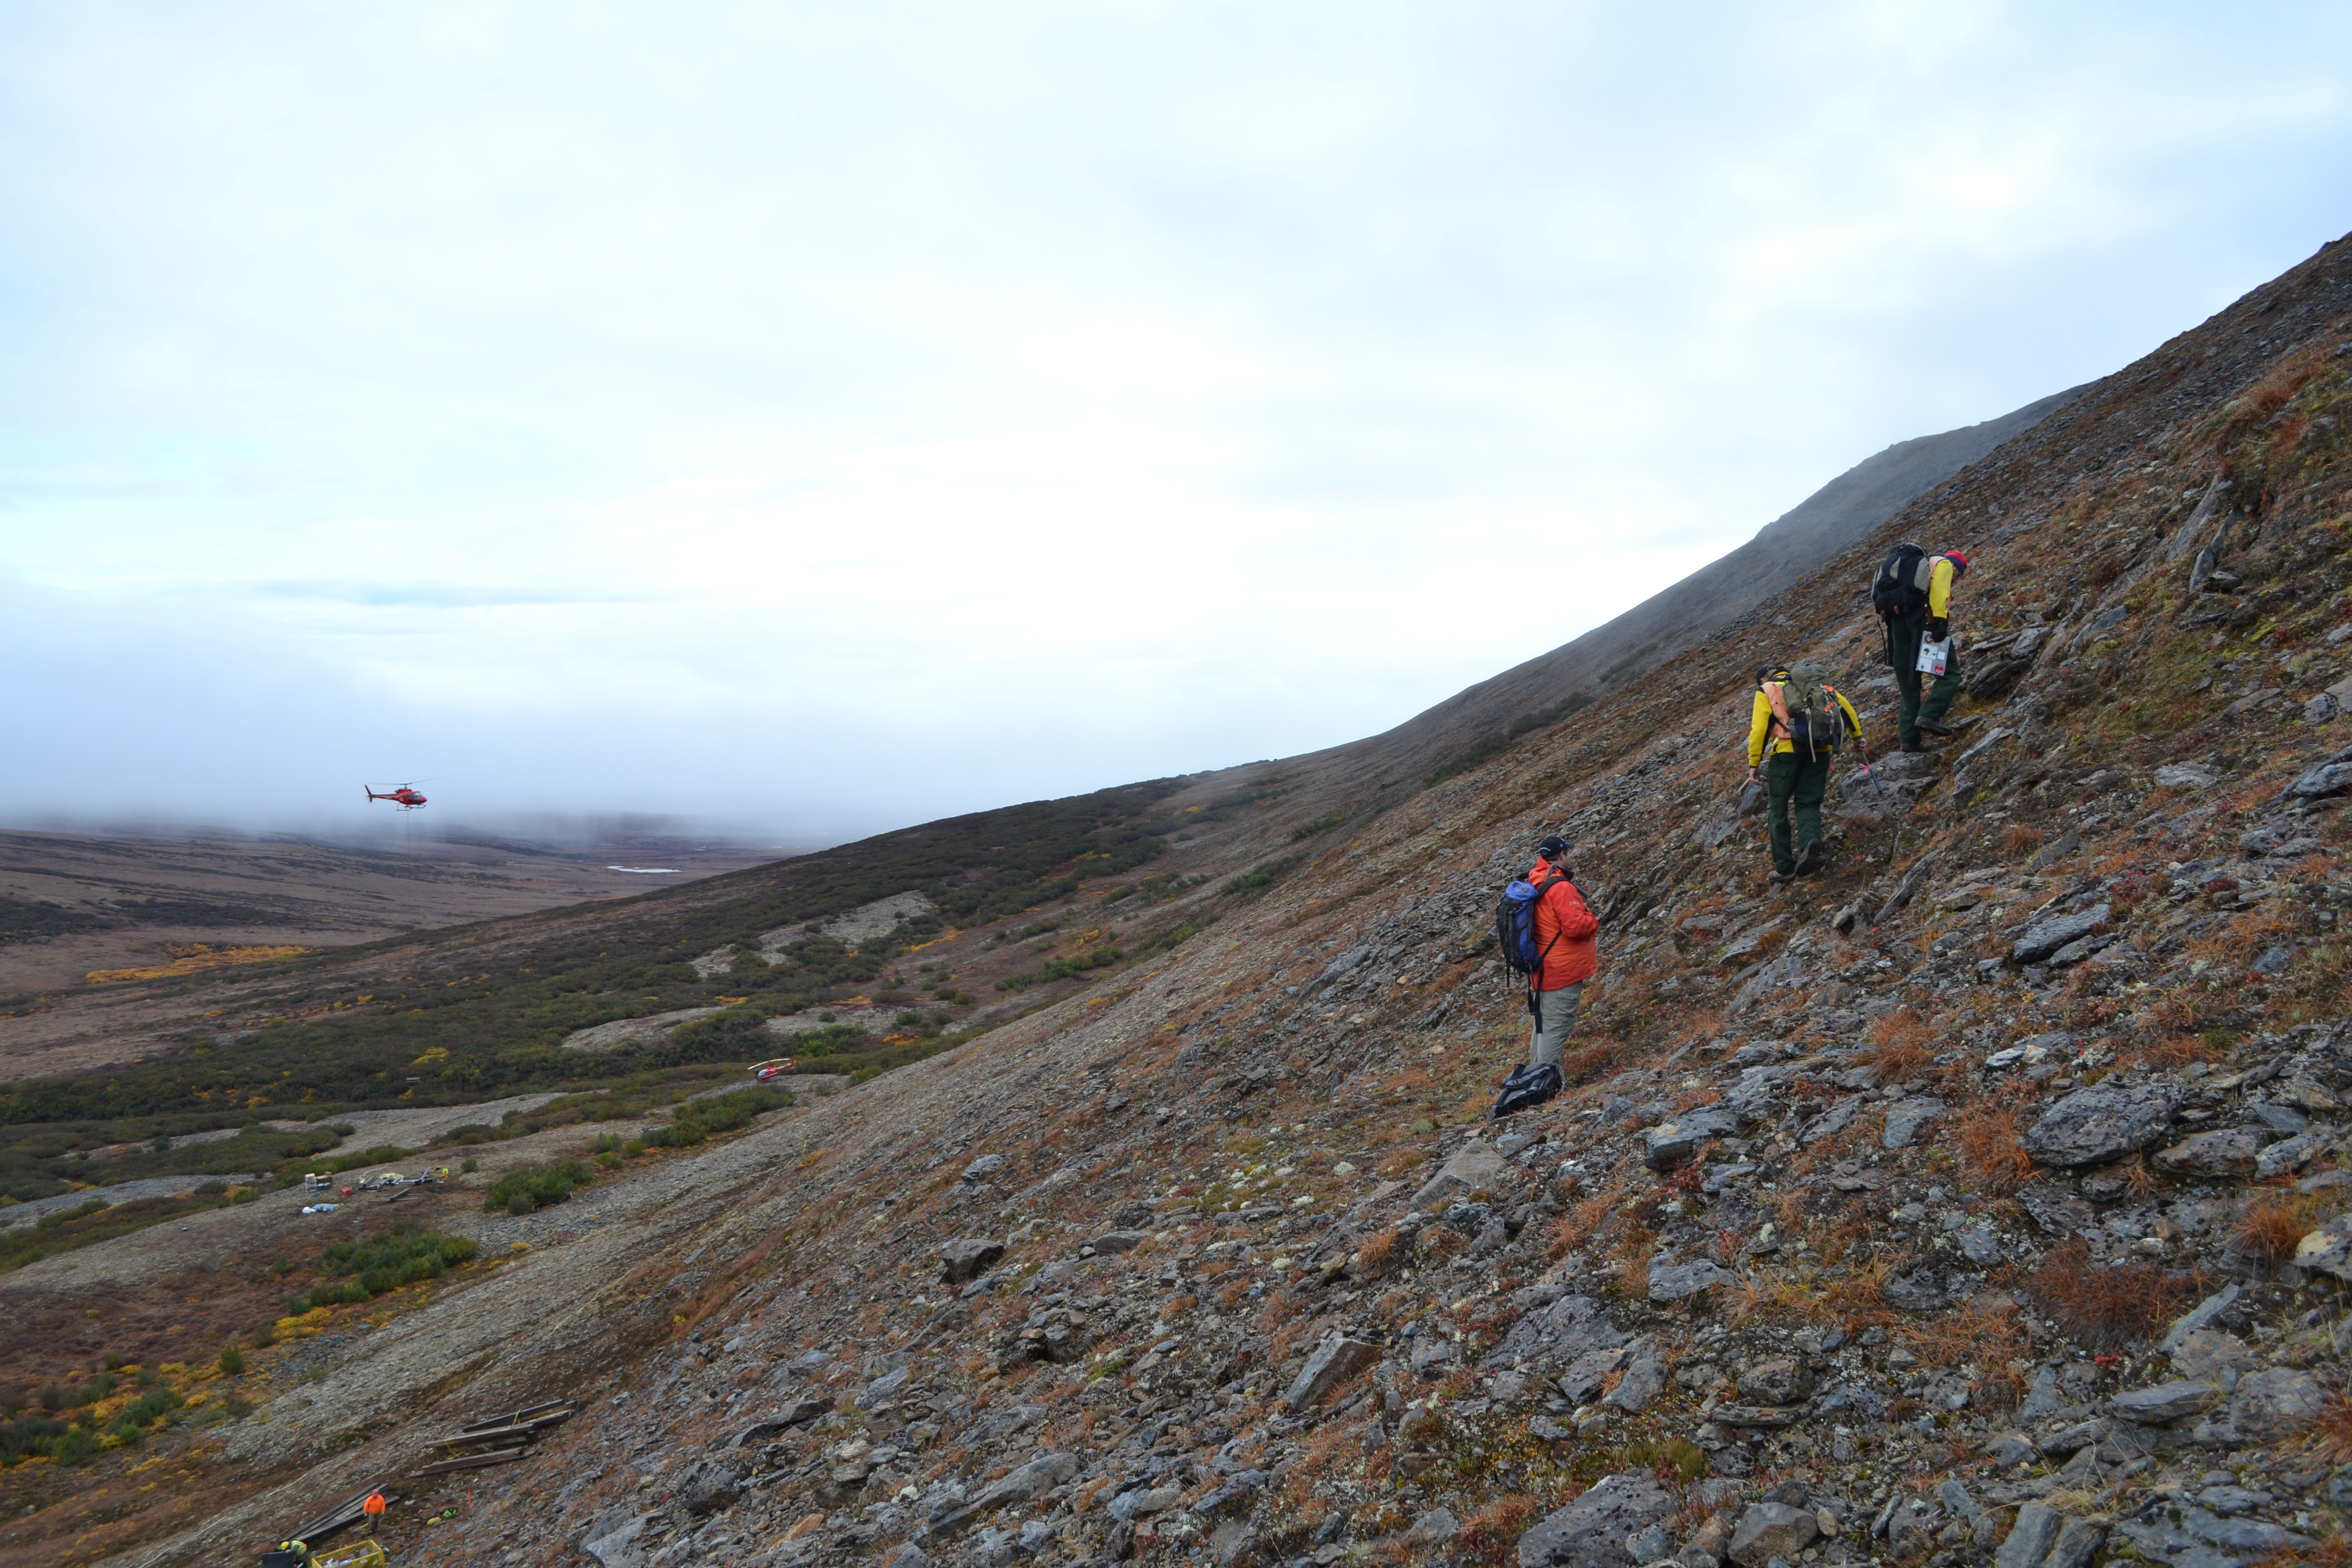 Field crews work on setting up the drilling program at the Graphite Creek project, while BLM geologists inspect a graphite lens outcrop above the drill site. Graphite One Resources' mine prospect, the Graphite Creek project, is near Nome. (Dave Hembree / Graphite One (Alaska) Inc)